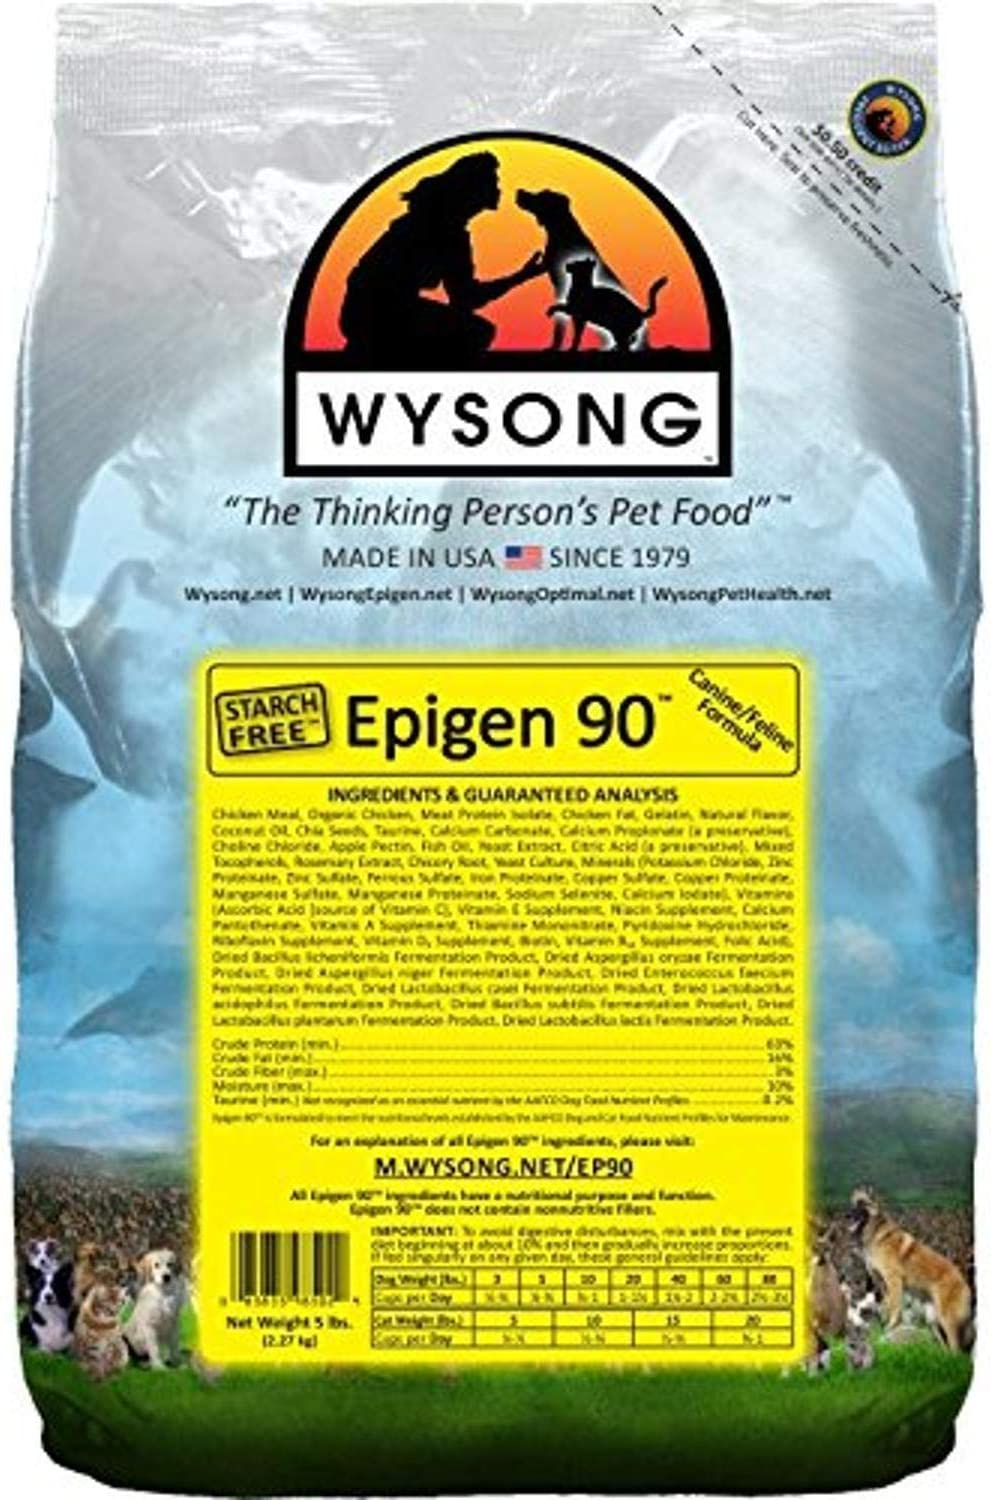 Wysong Epigen 90 Canine/Feline Dry Diet - Dog/Cat Food